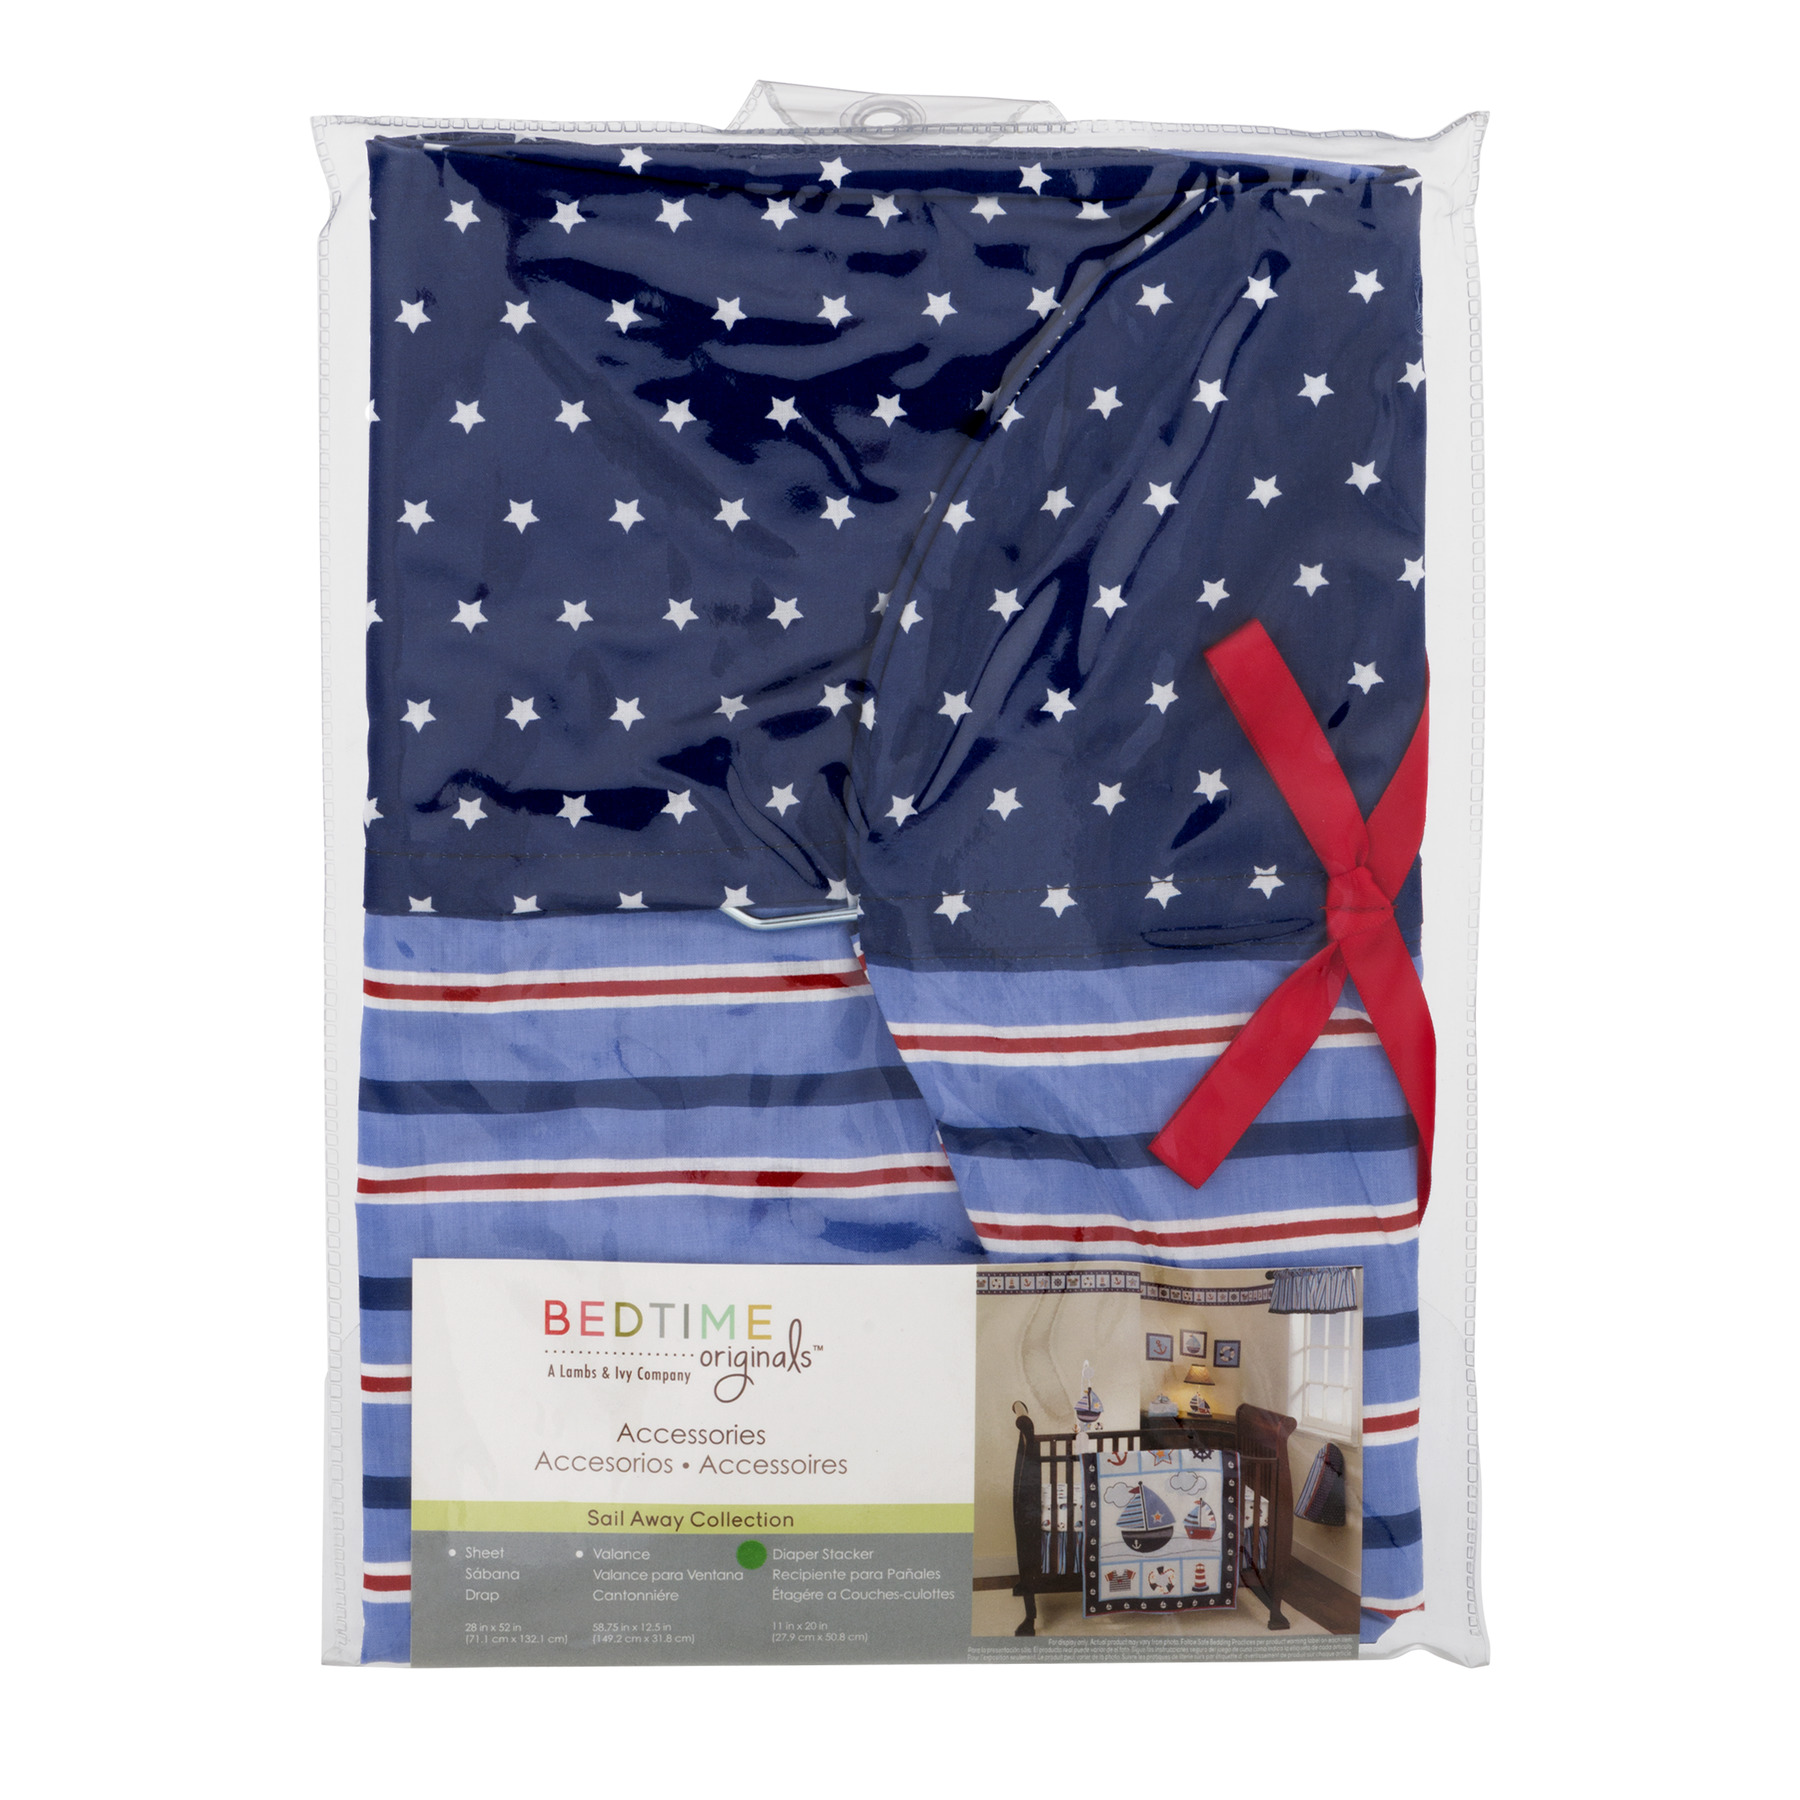 Bedtime Originals Diaper Stacker, Sail Away Collection, 1.0 CT by Lambs %26 Ivy